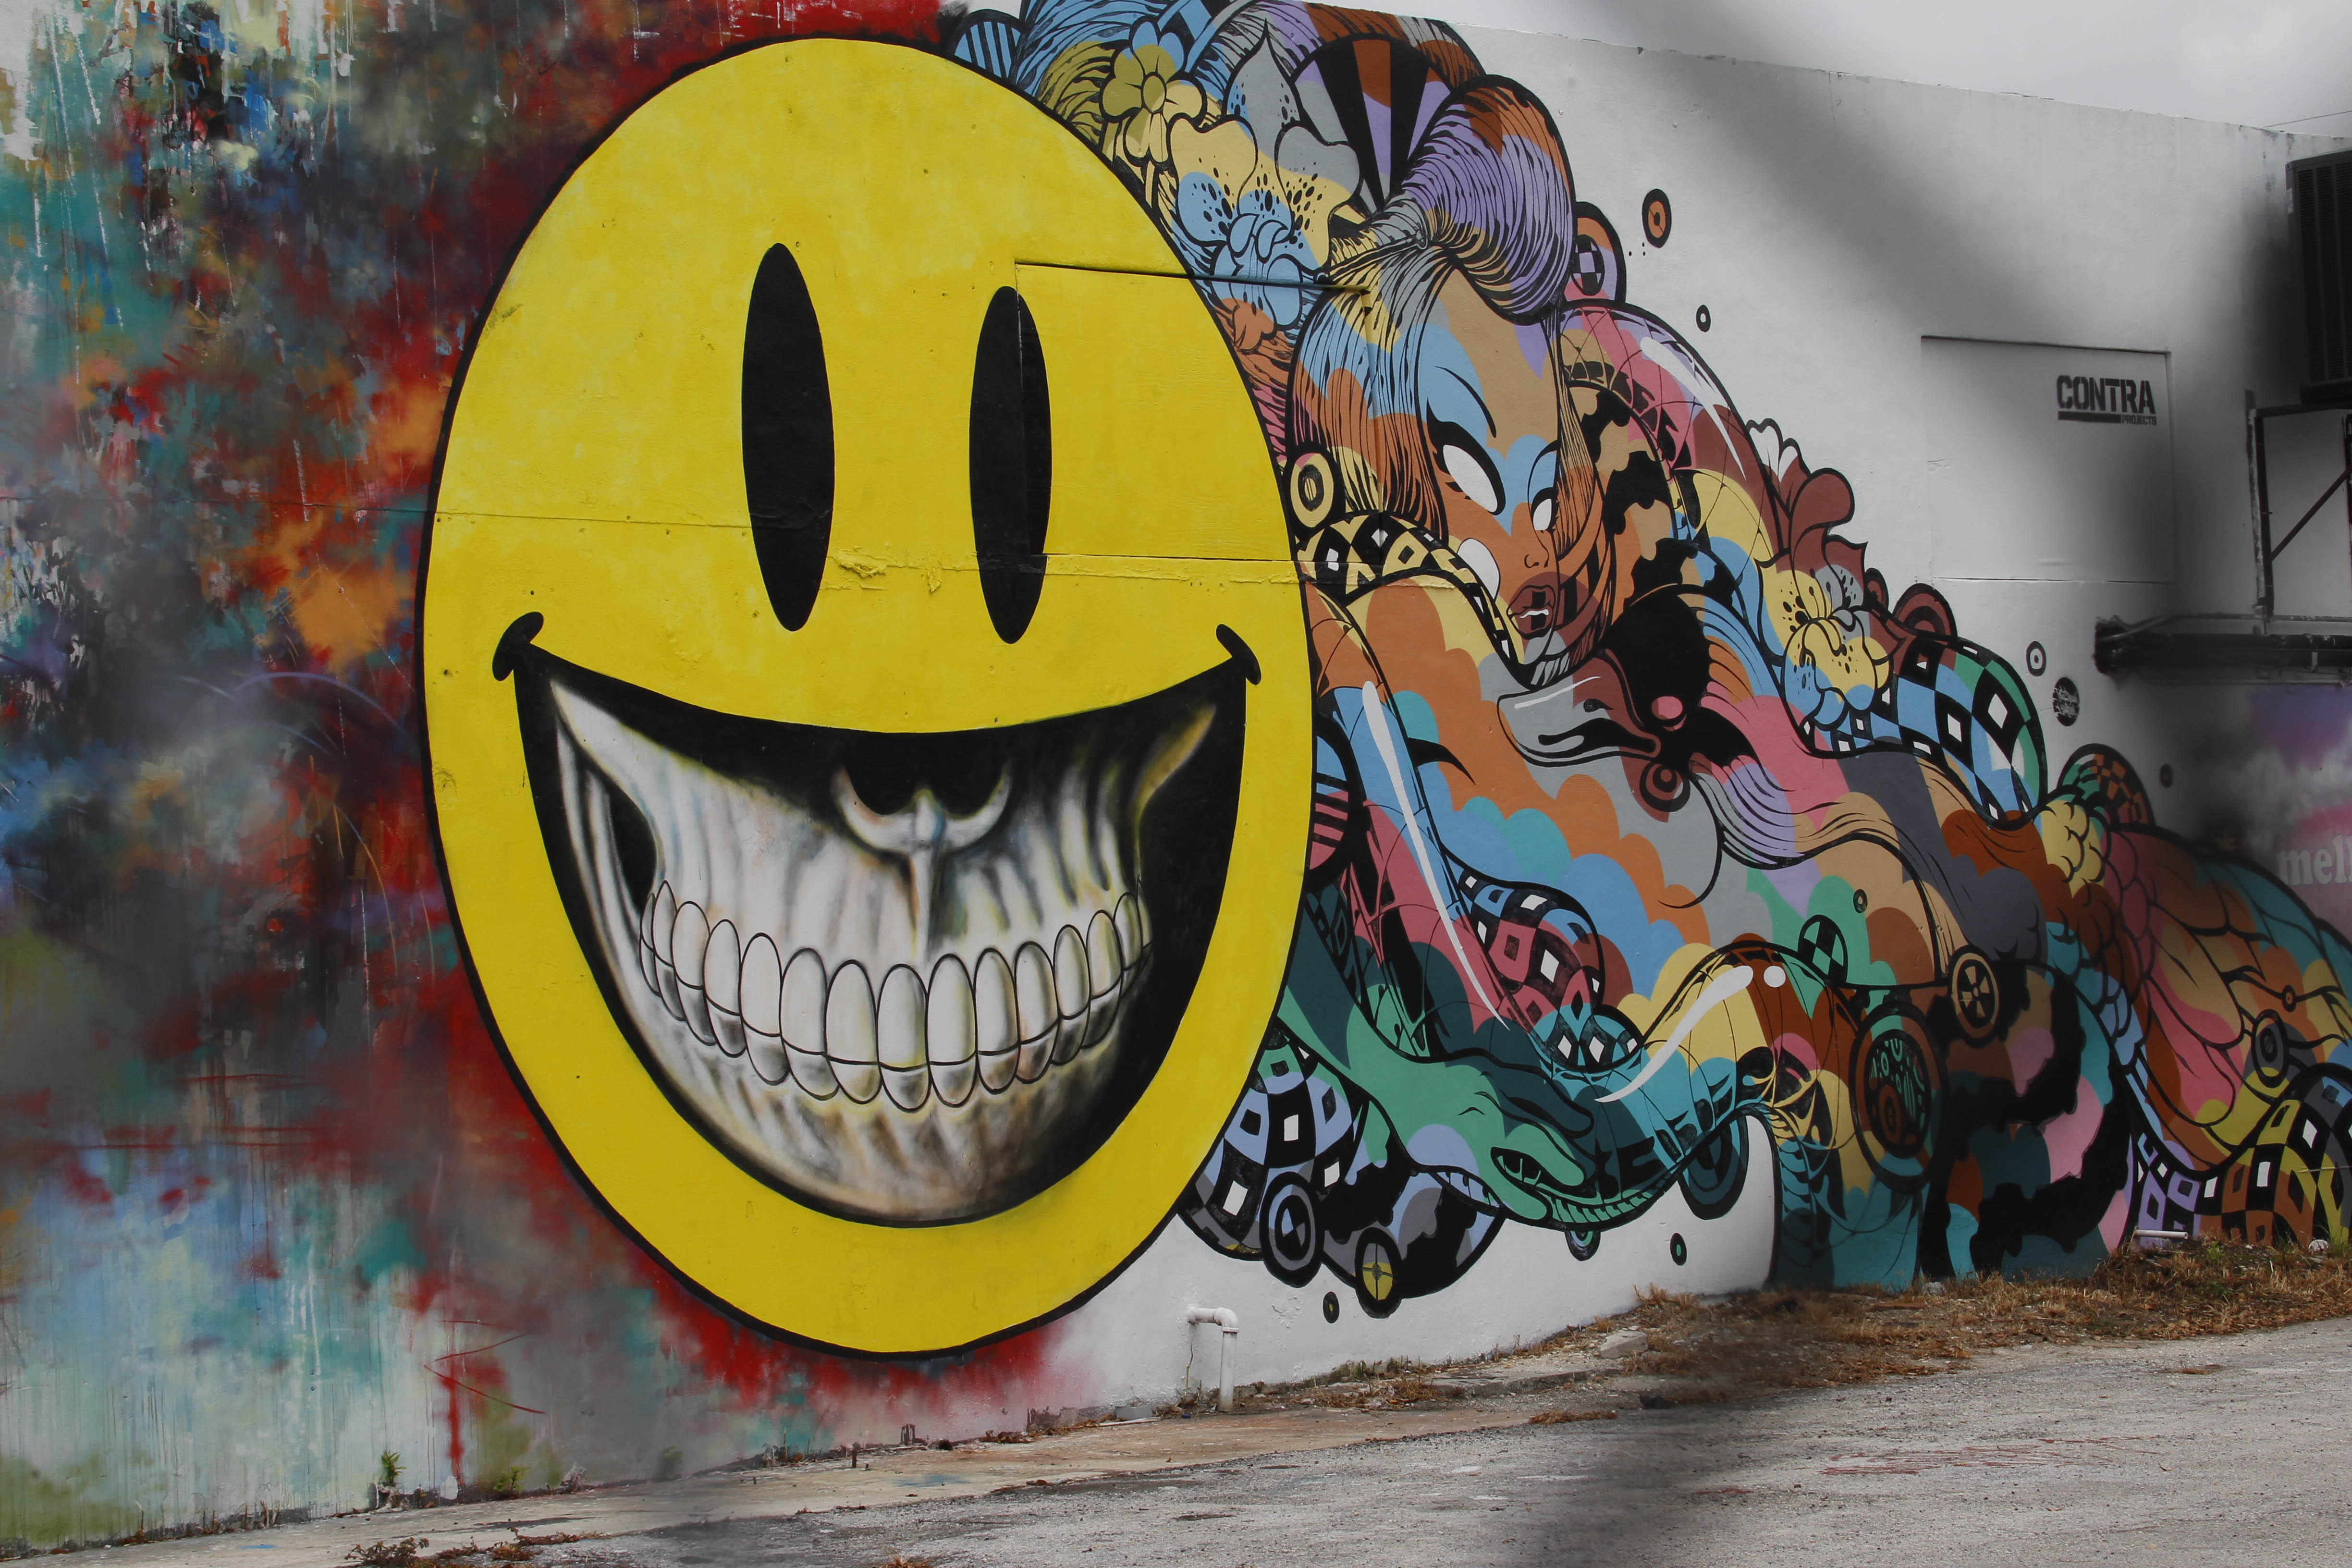 Miami graffiti tour | The Spokesman-Review